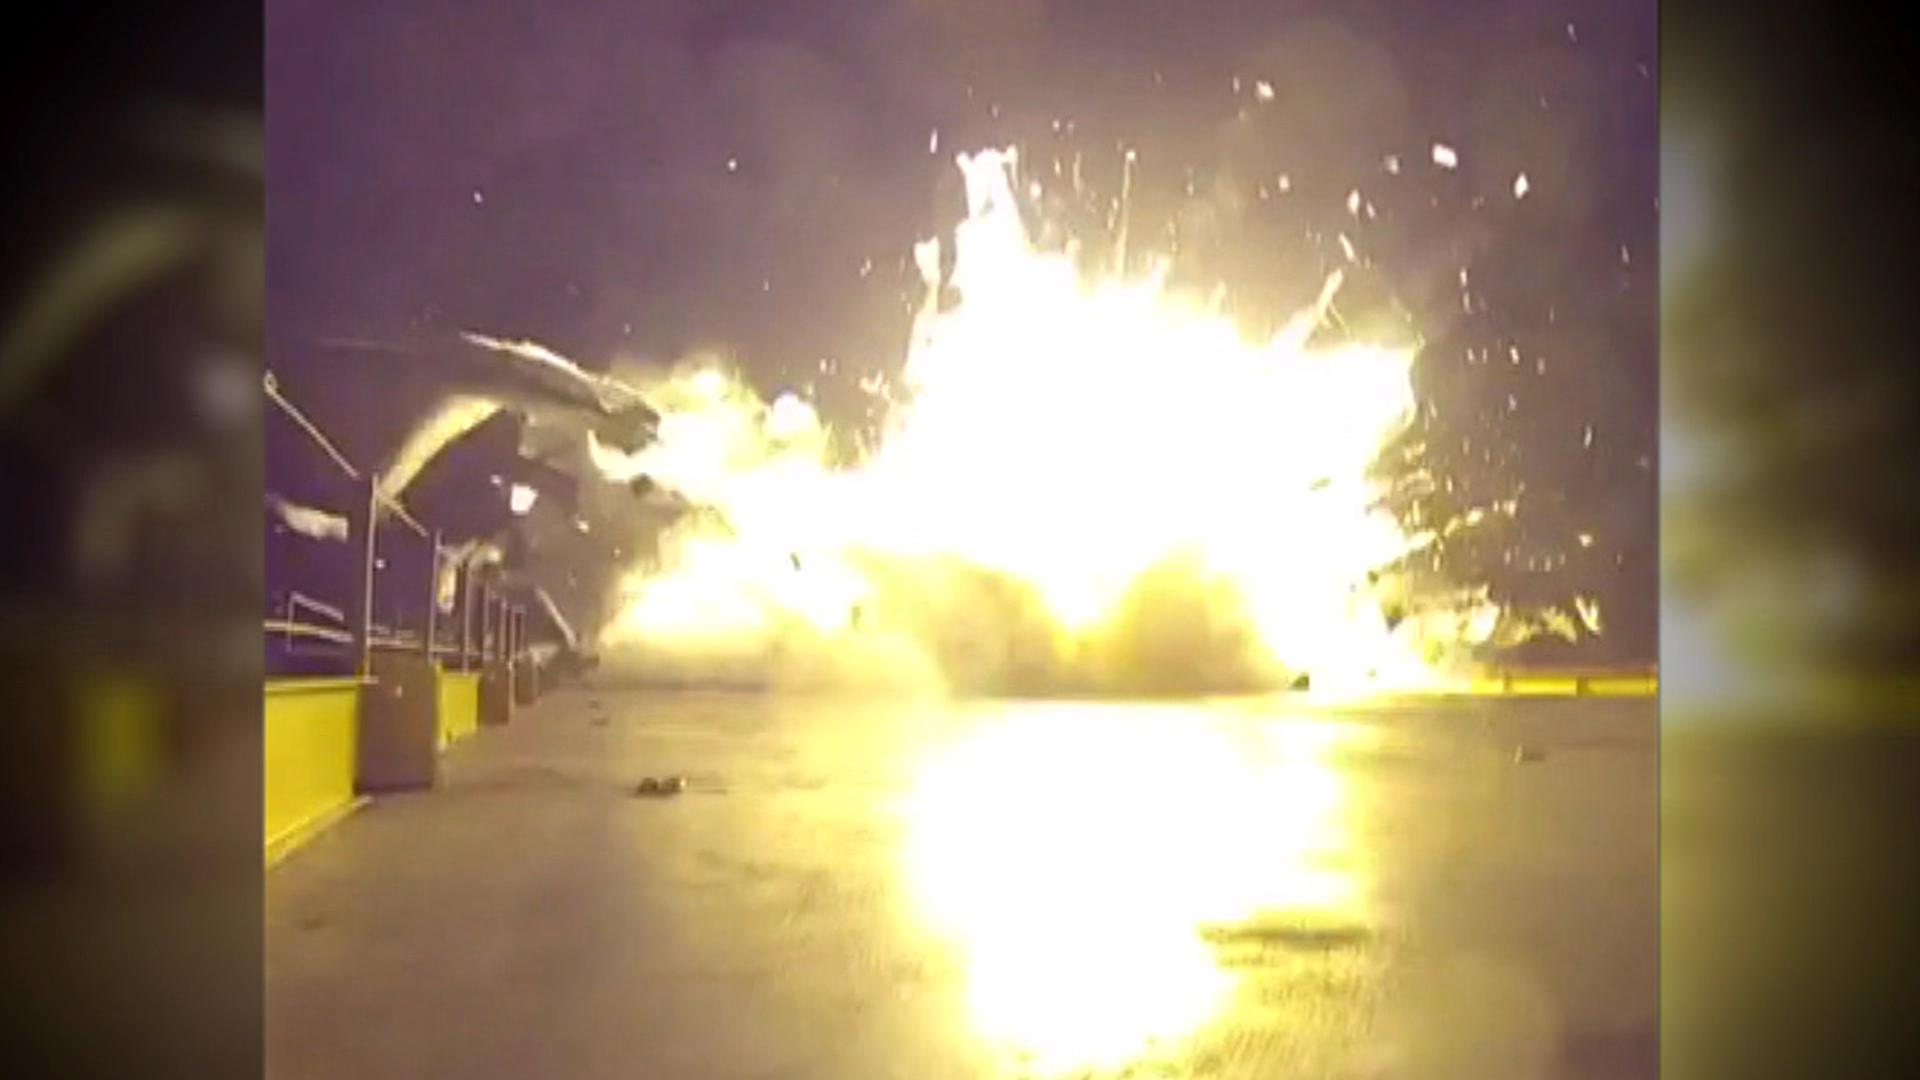 Video Captures SpaceX Rocket Landing End in Fiery Explosion